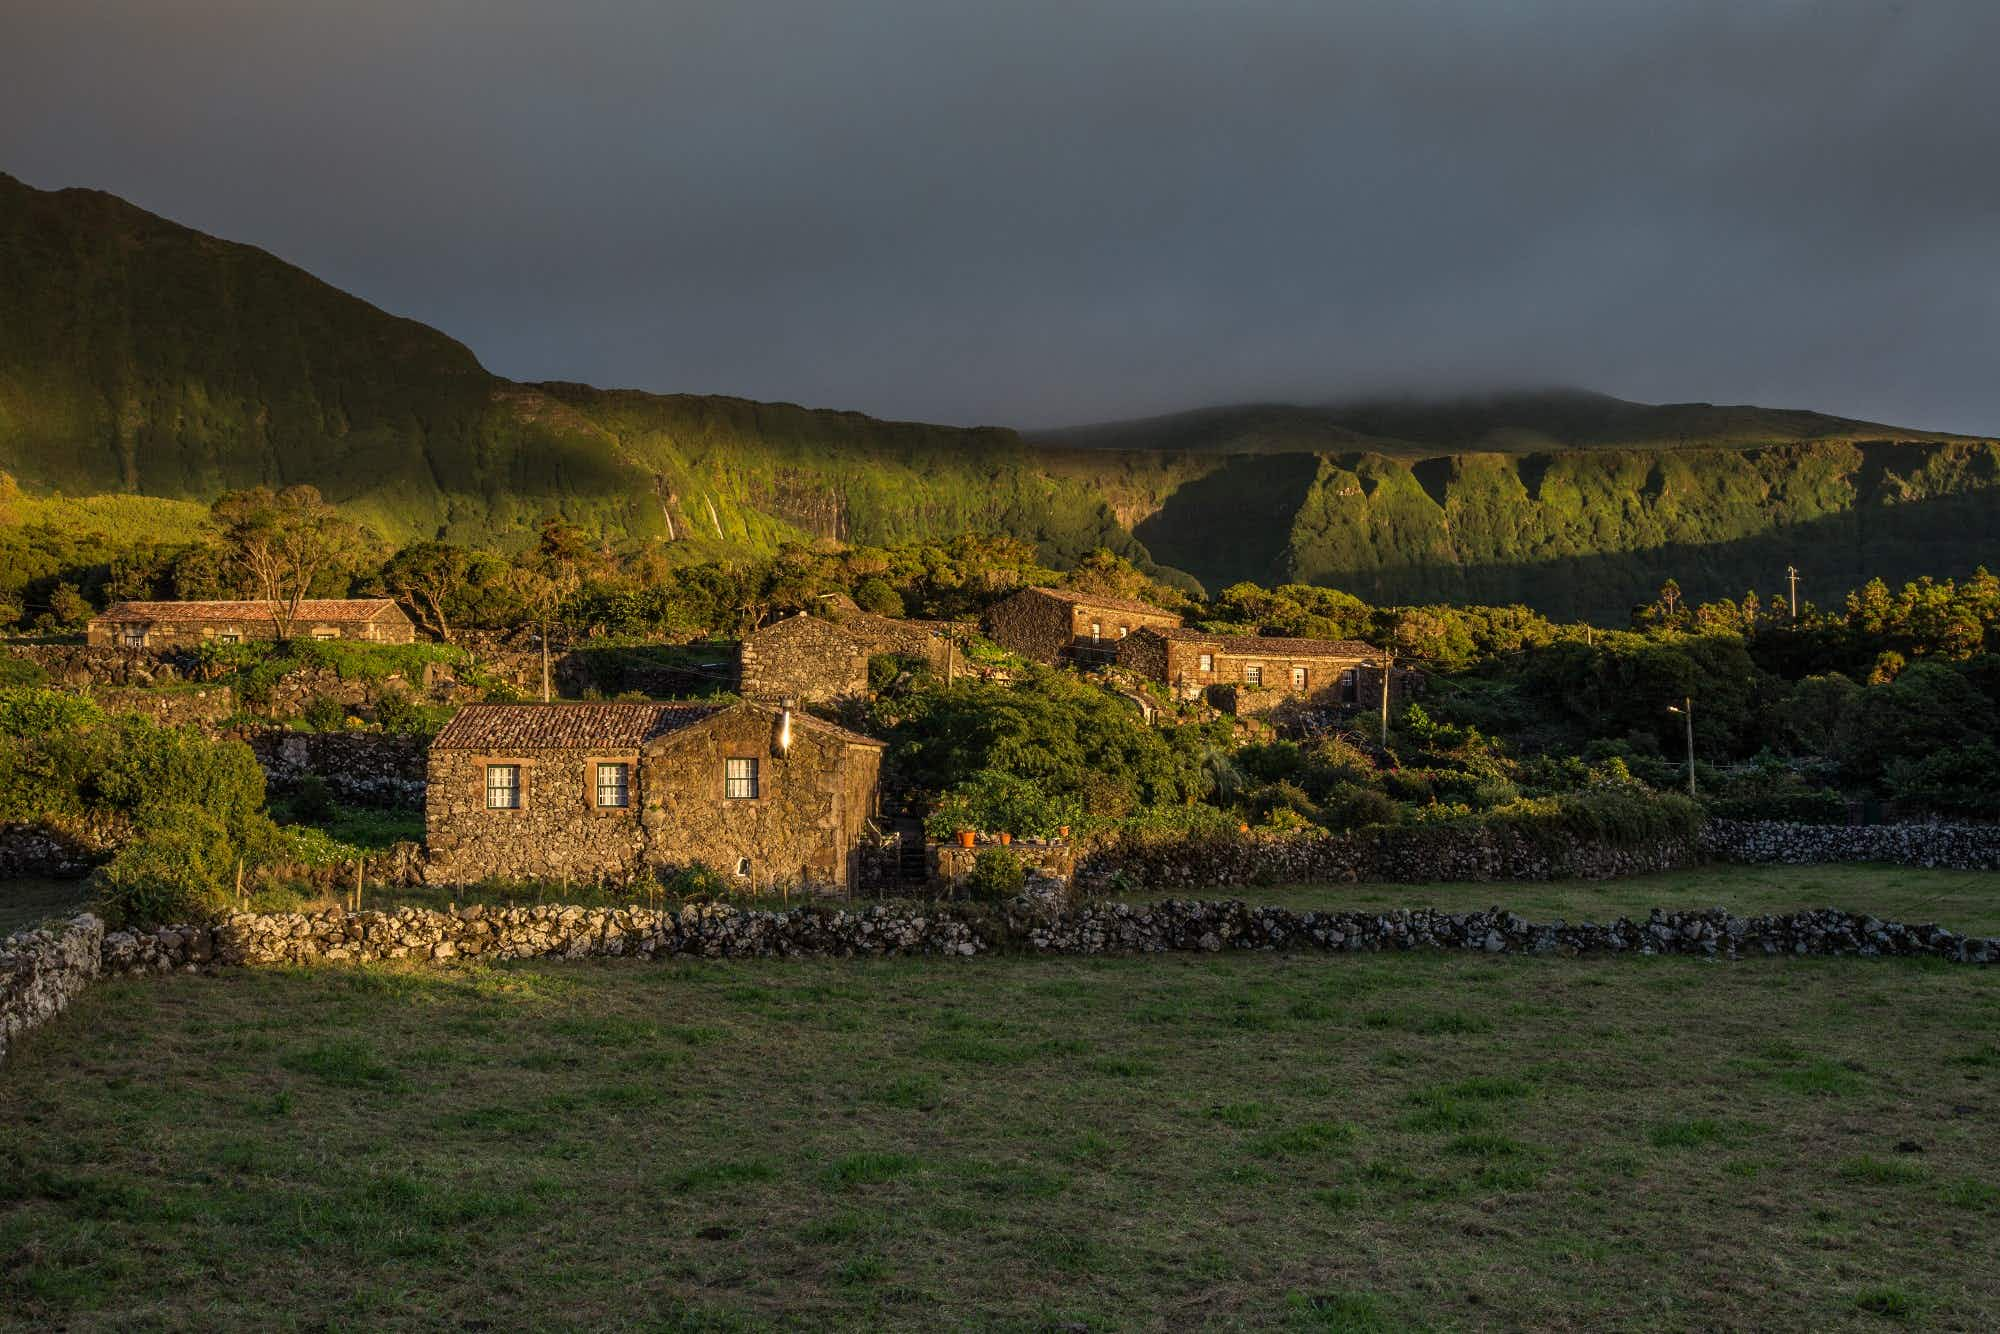 Remote Flores Island's stunning stone cottages win a sustainability award